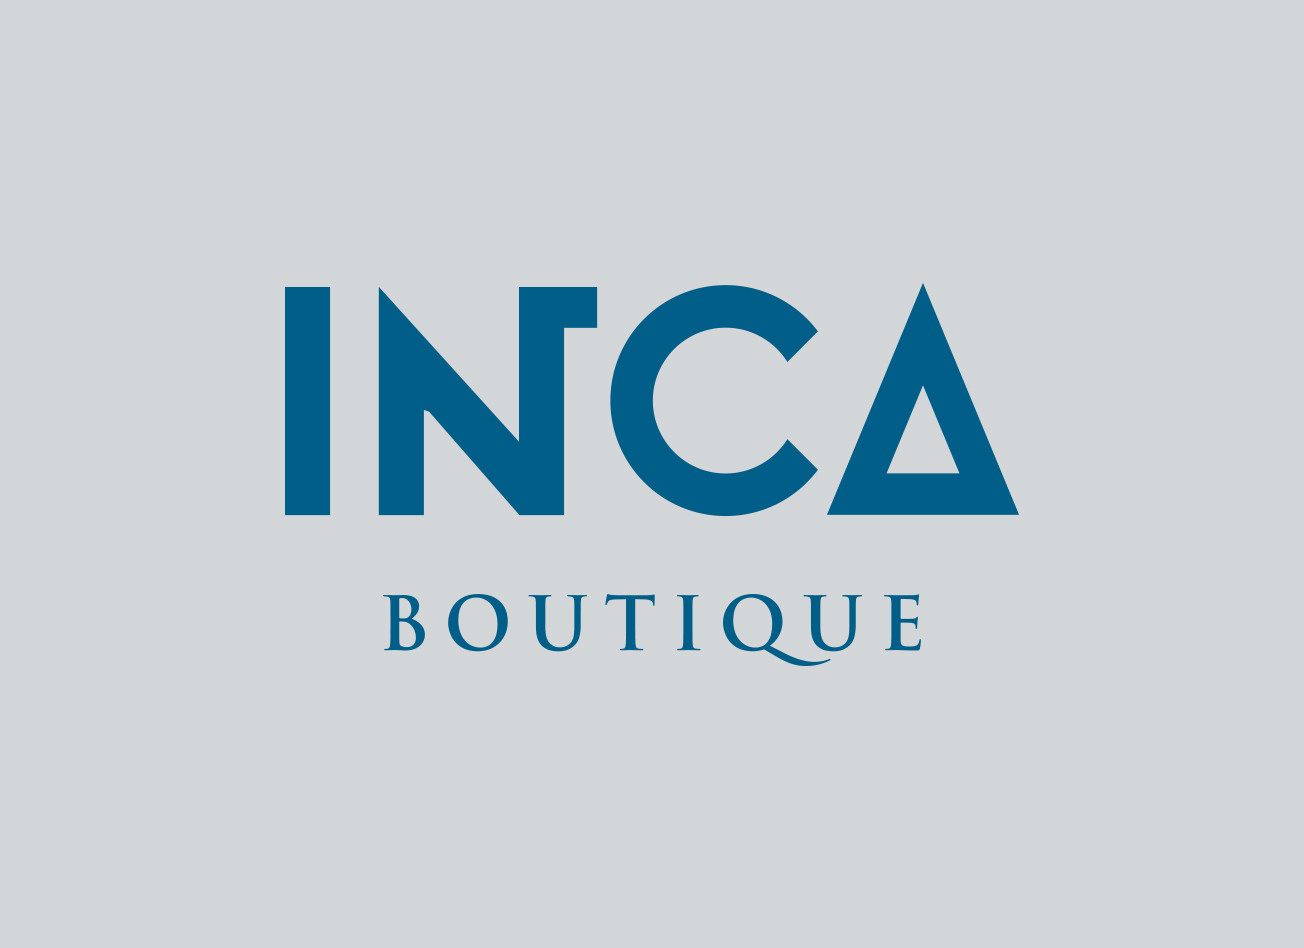 INCA FARALYA BOUTIQUE